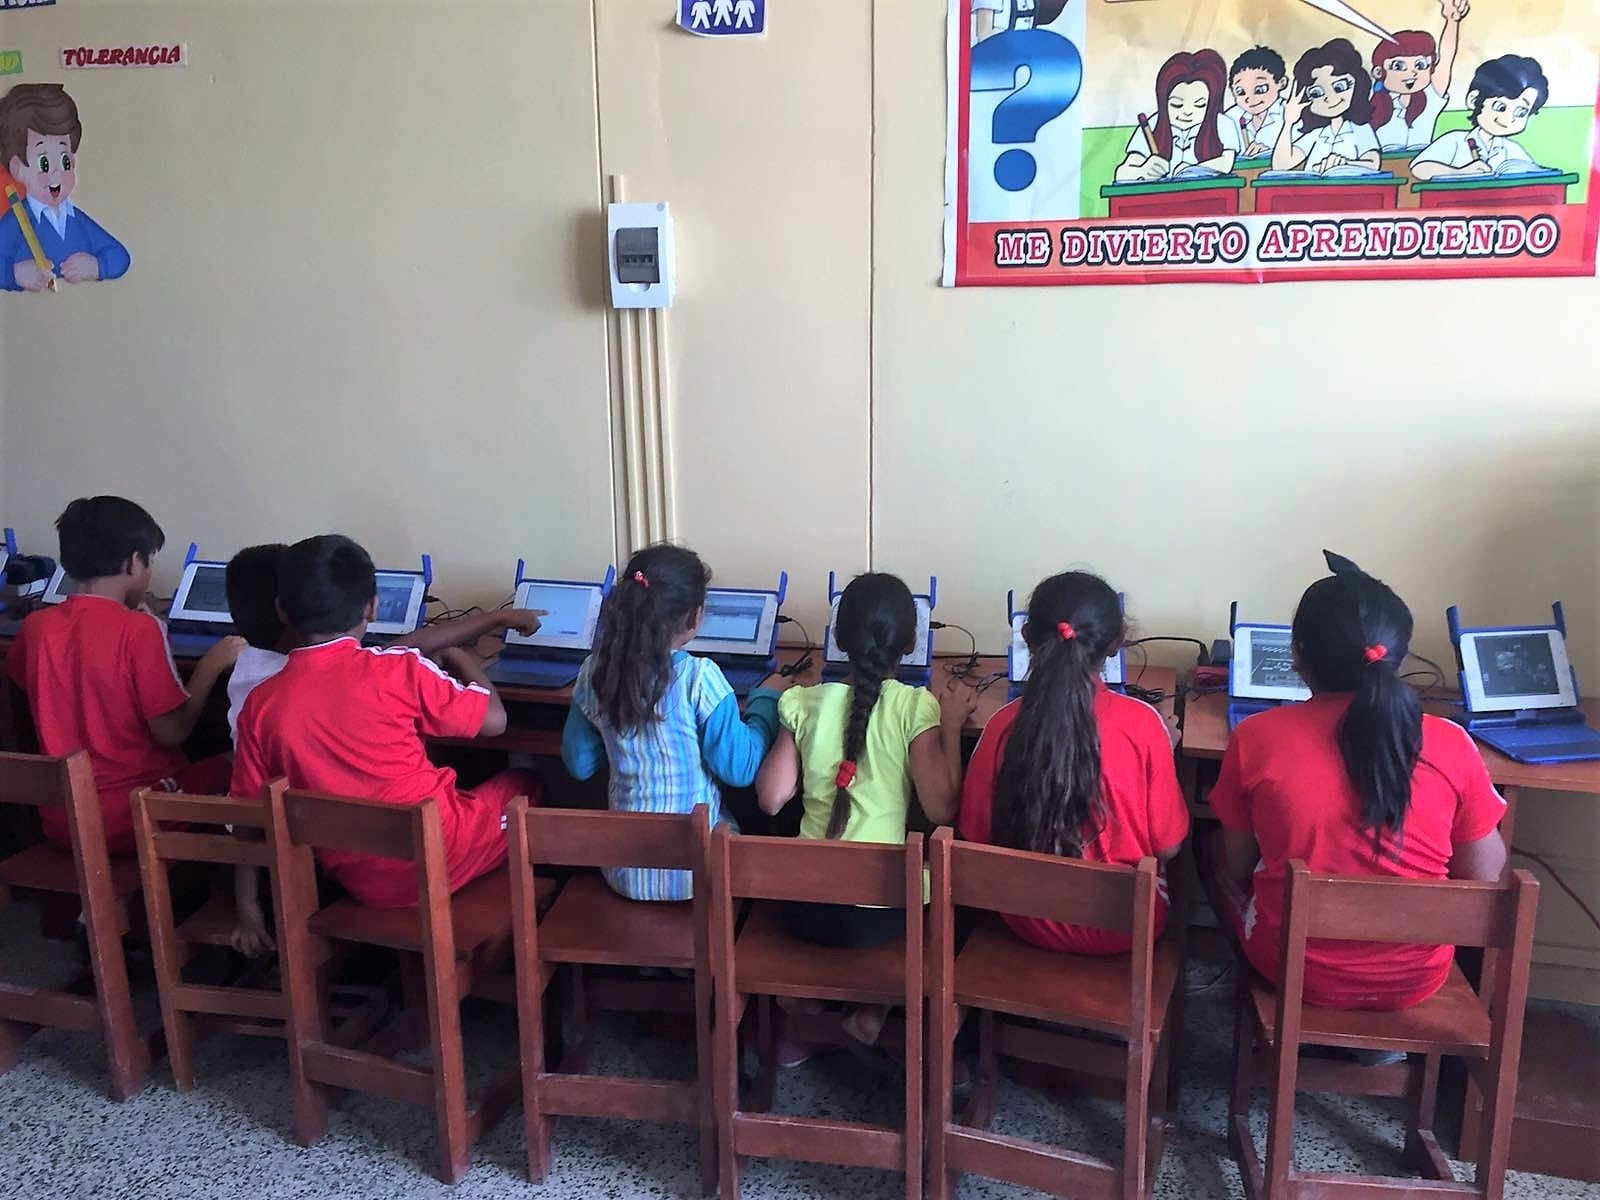 kids at school in Latin America  with internet access and computers having fun learning